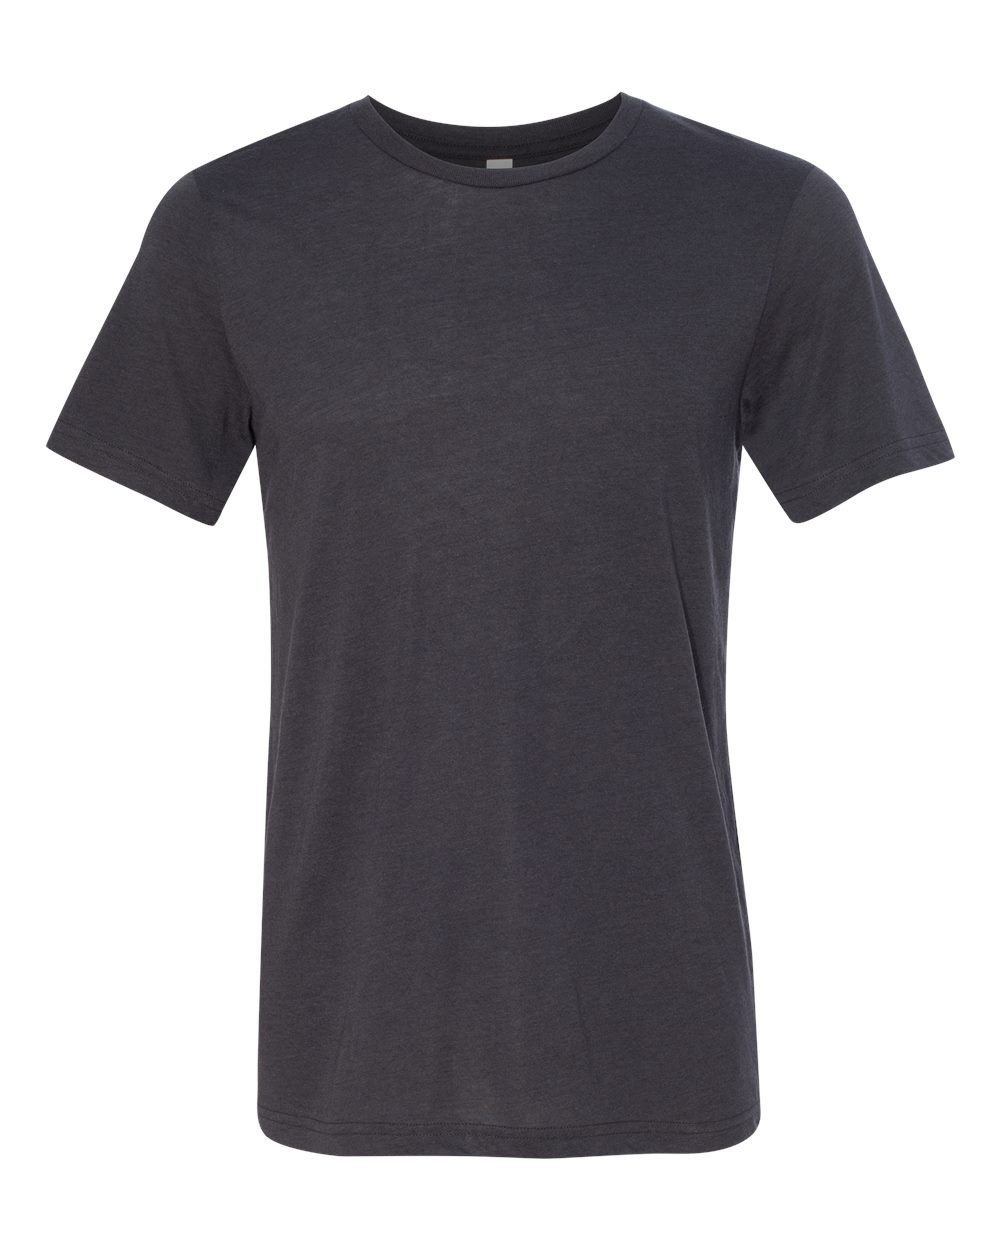 click to view Solid Dark Grey Triblend